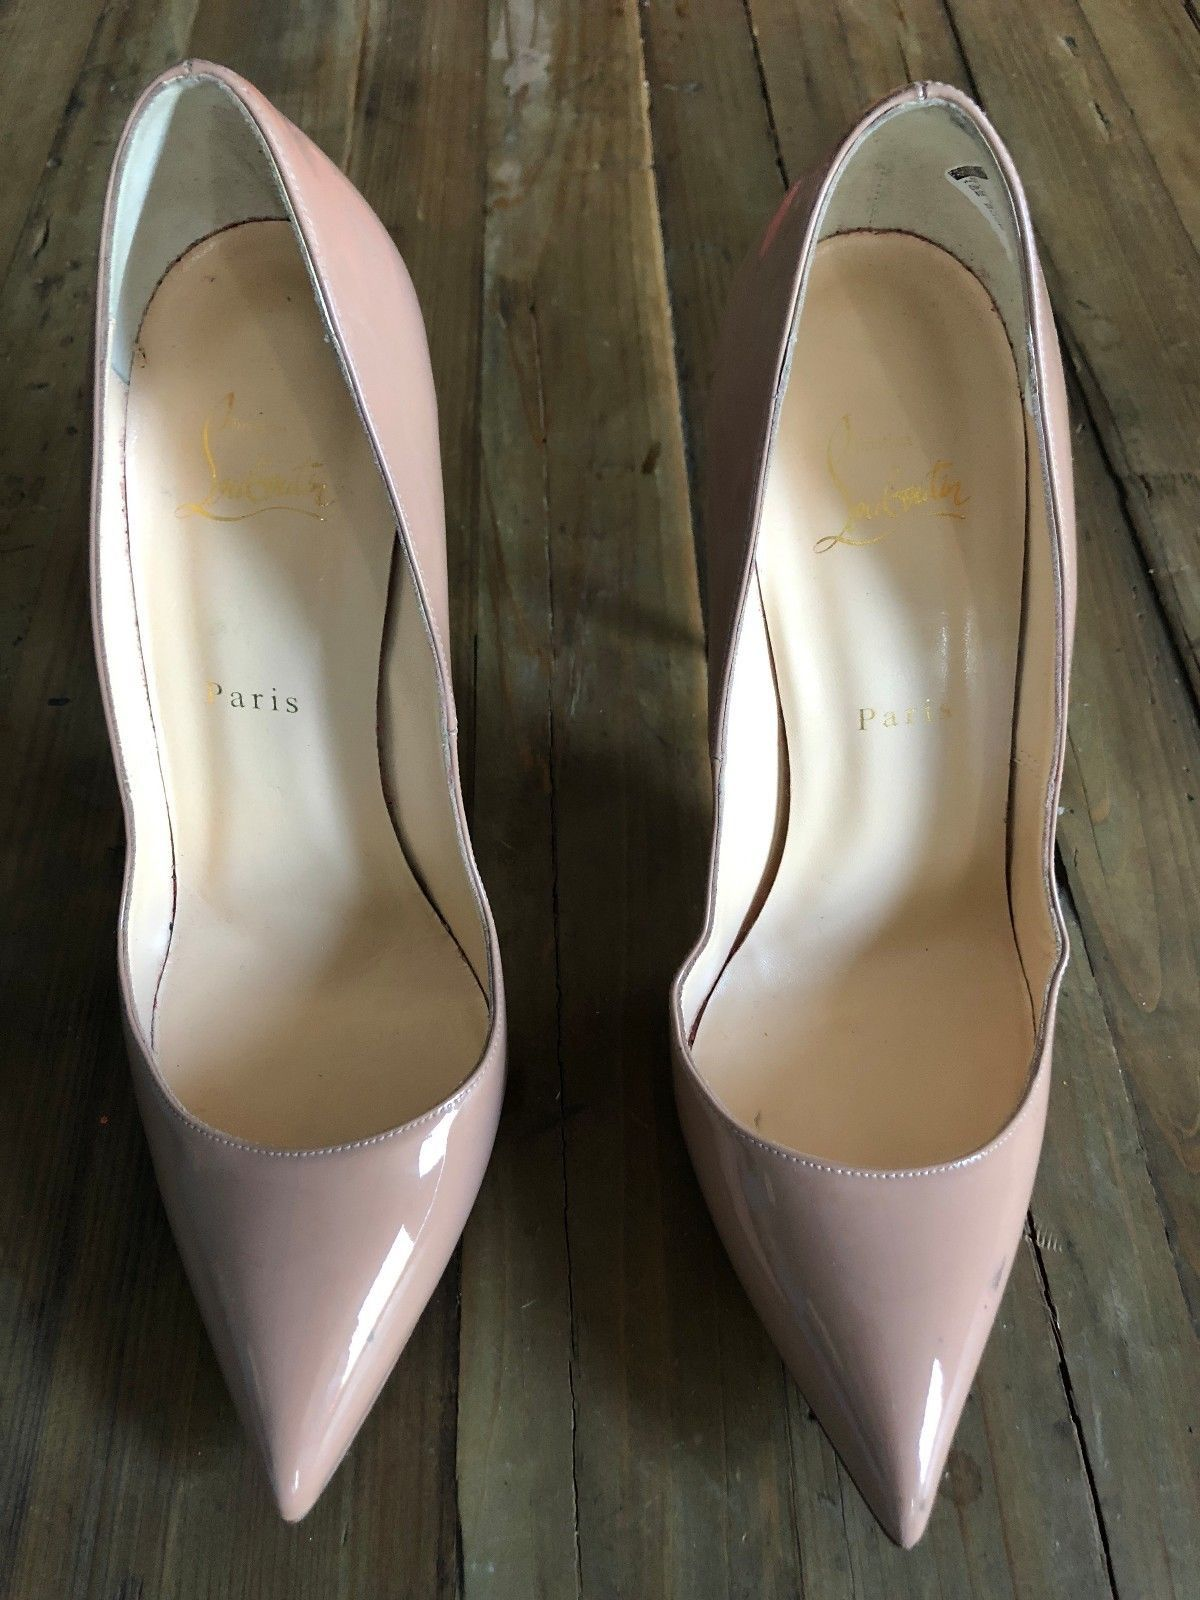 3b503497f82 CHRISTIAN LOUBOUTIN Nude Patent Leather Pump in Size 41 | Fashion I ...